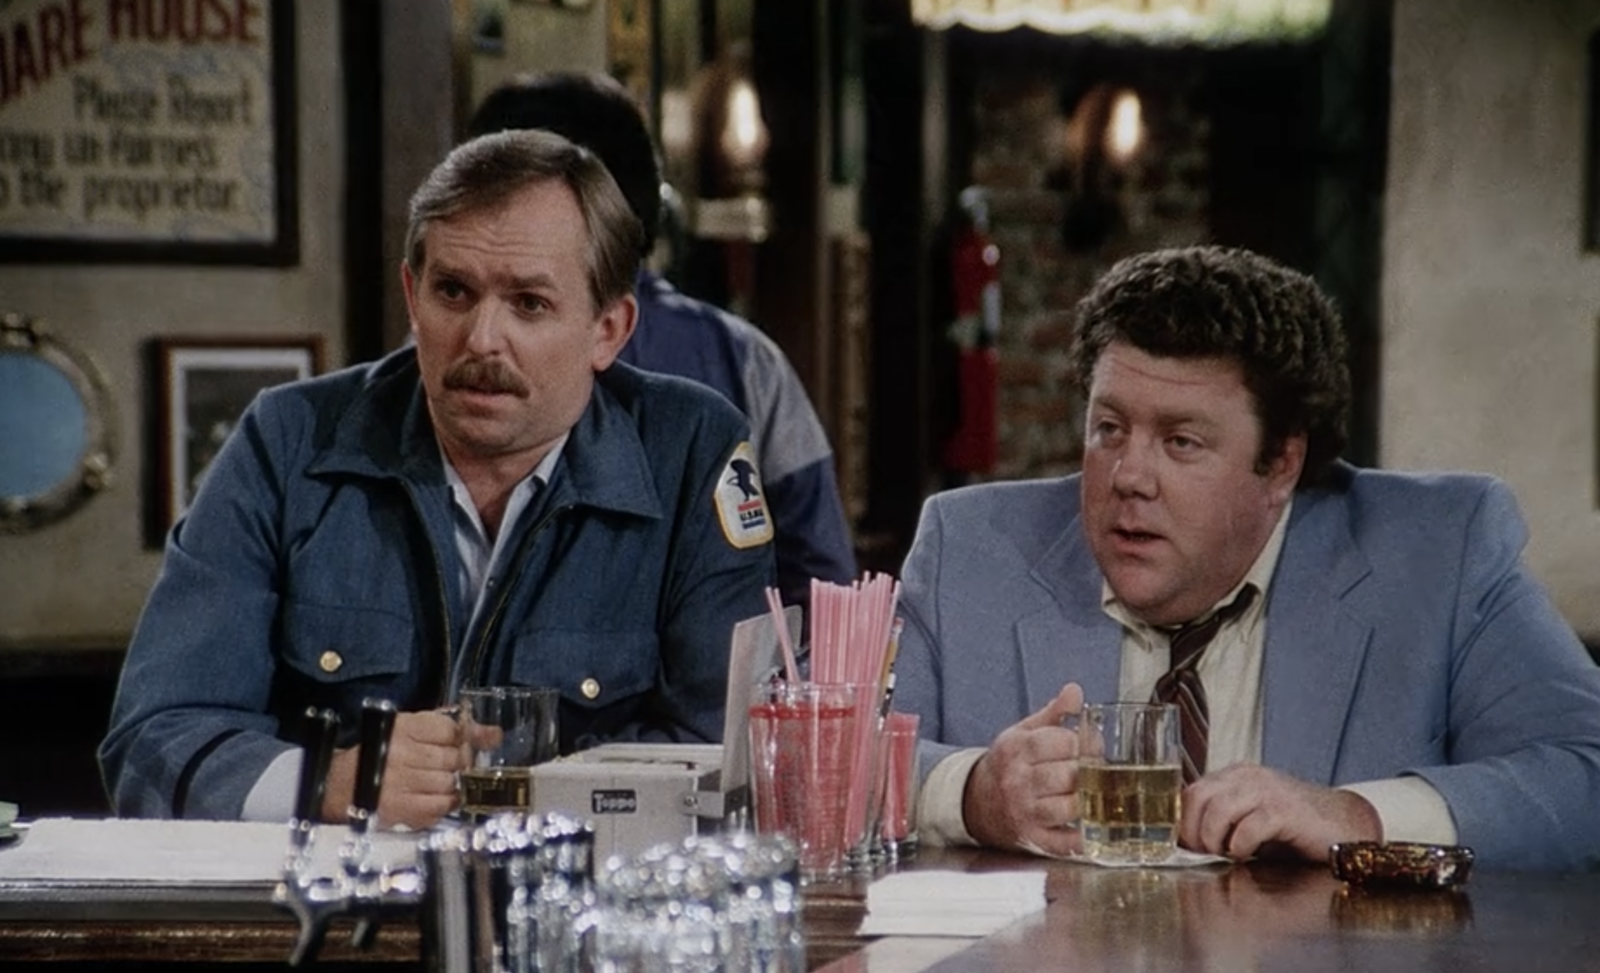 Cliff Clavin  was originally not a character  on  Cheers  — in fact, John Ratzenberger persuaded the creators to write a role for him after he auditioned for Norm.